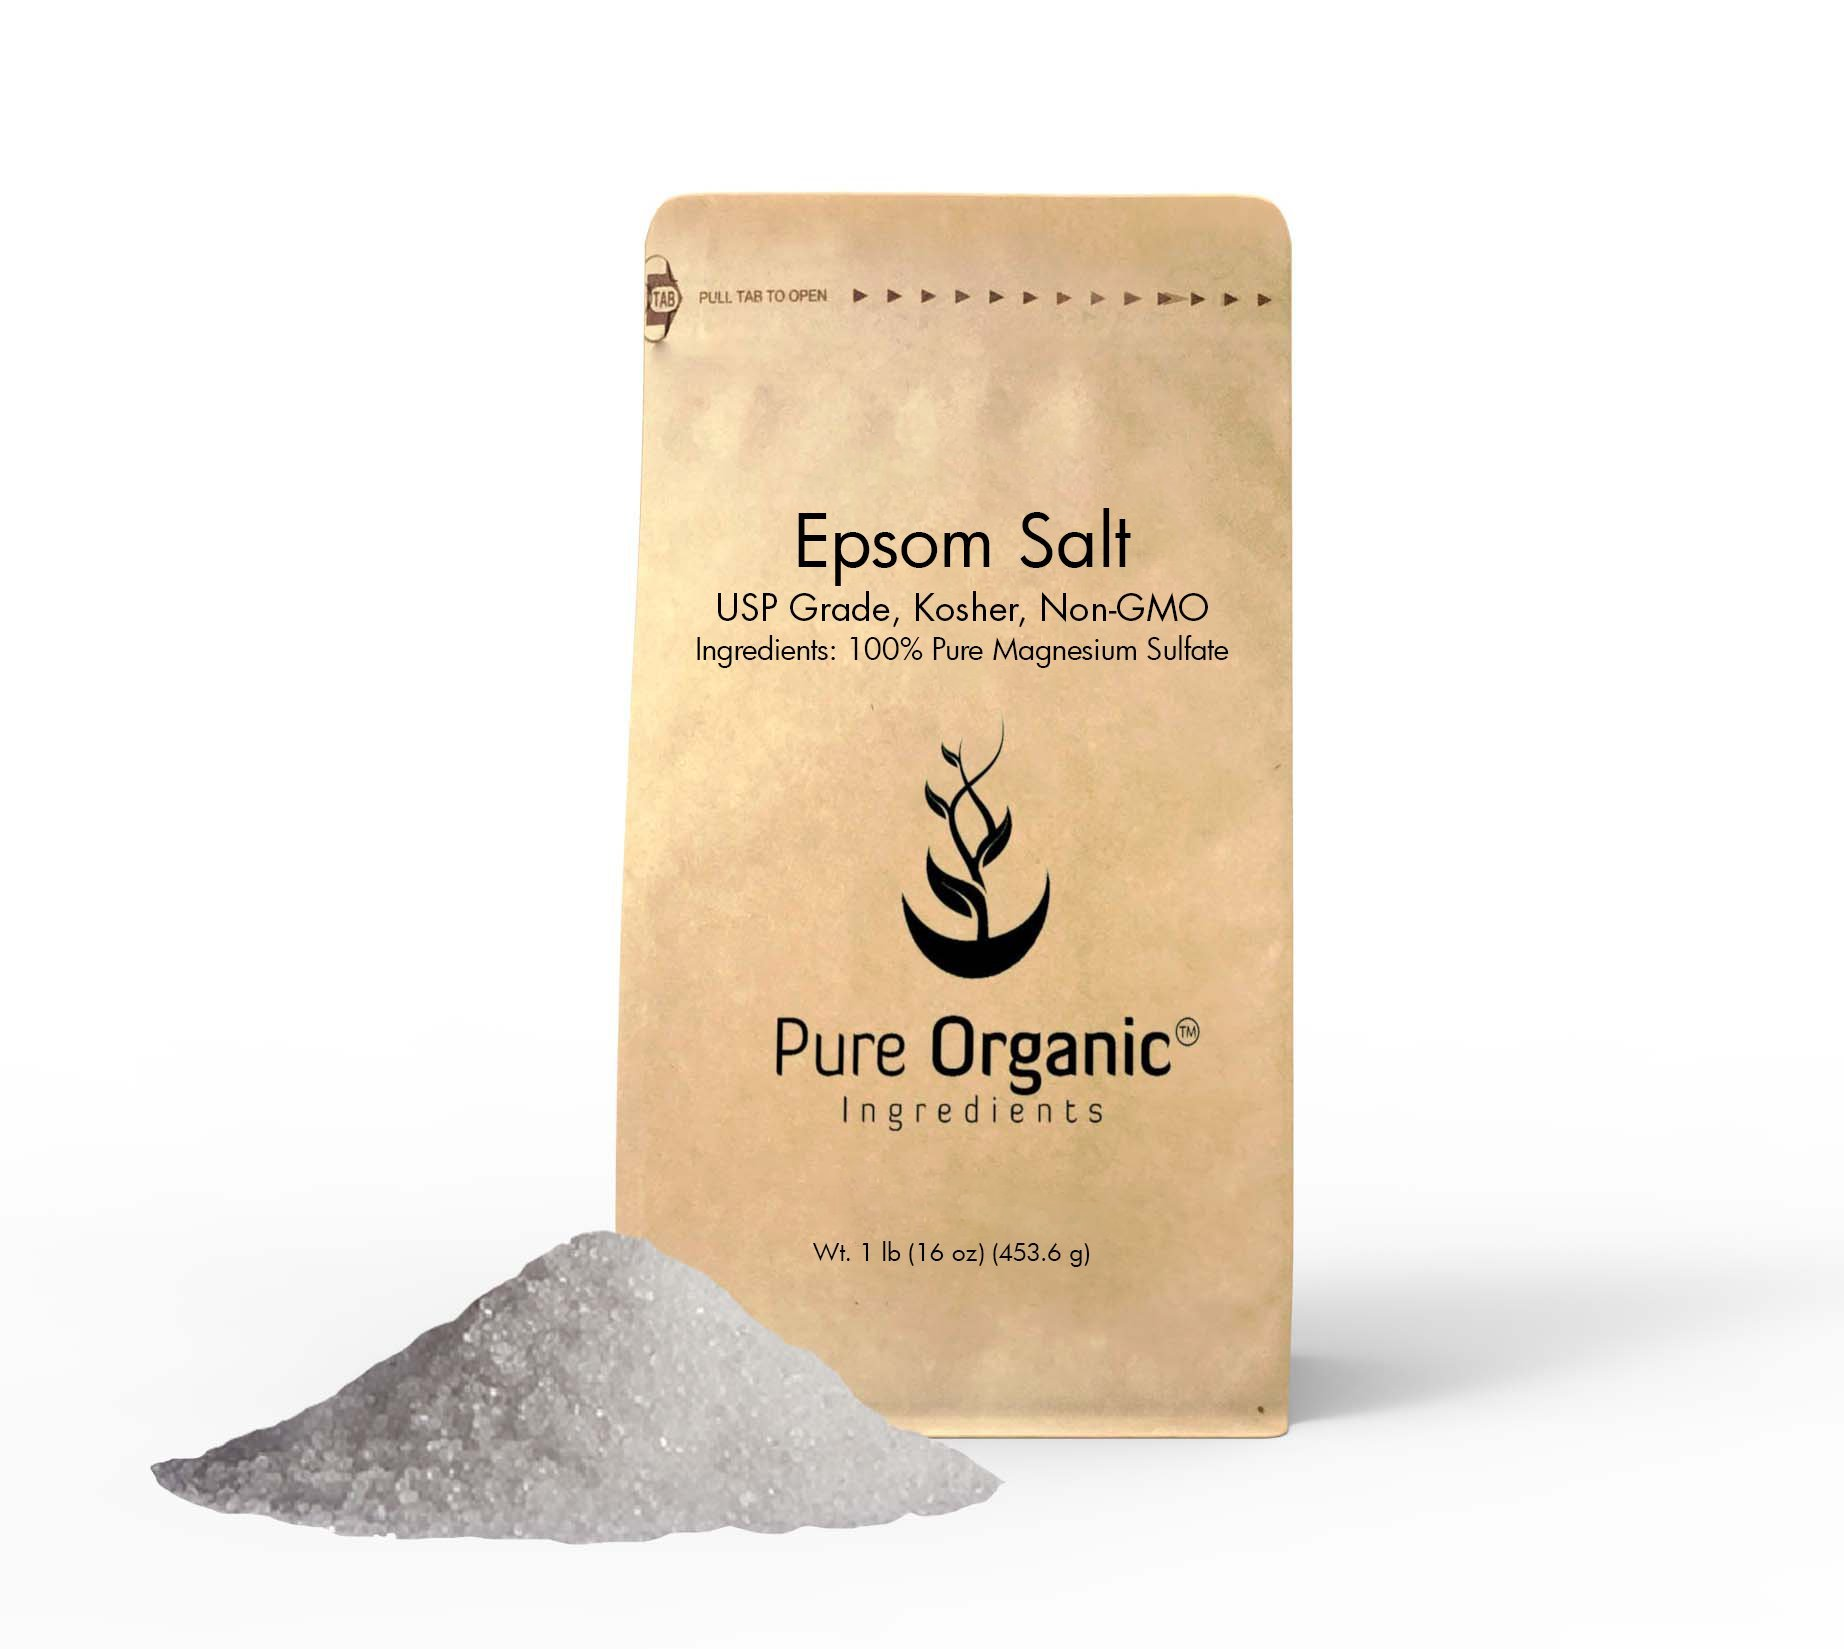 Pure Epsom Salt (Magnesium Sulfate), 1 lb (16 oz), Soaking Solution, All-Natural, Highest Quality & Purity, USP Grade, Eco-Friendly Packaging (Also available in 4 oz & 5 lb)